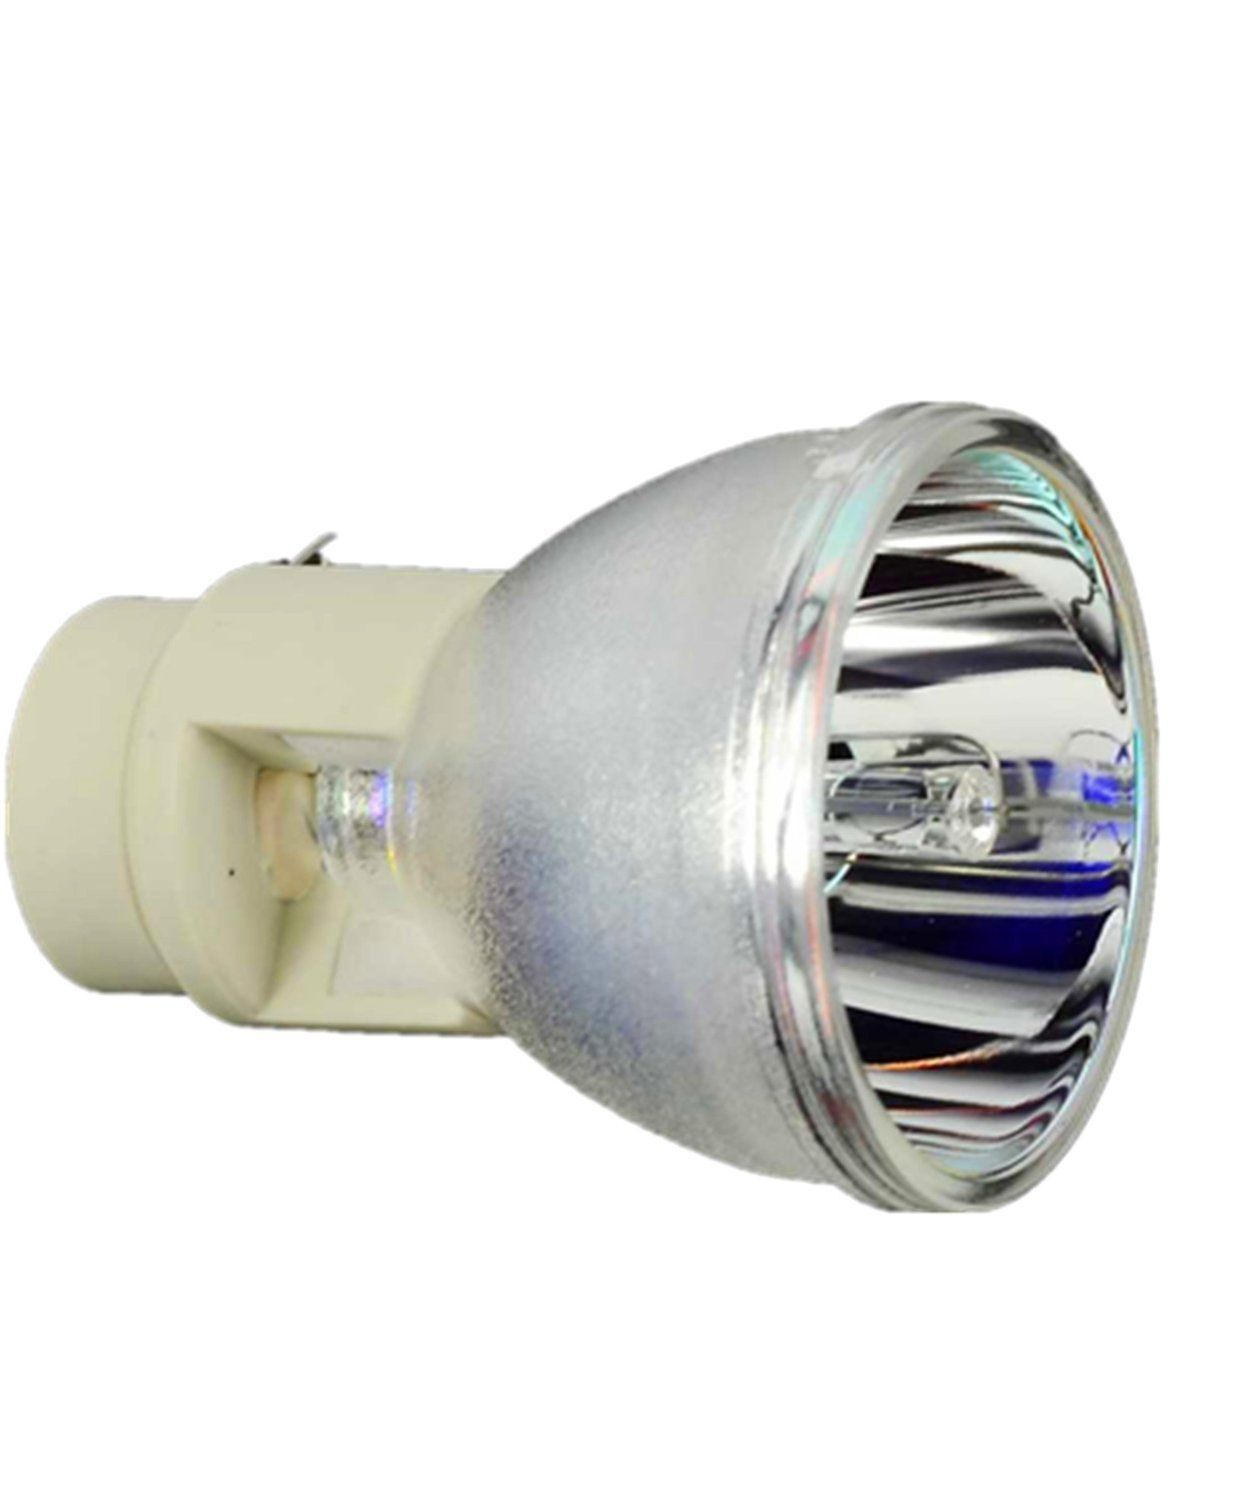 Compatible Bare Bulb RLC-100 RLC100 for VIEWSONIC PJD7828HDL PJD7831HDL PJD7720HD Projector Lamp Bulb without housing wholesale compatible bare bulb for phoenix shp69 projector lamp bulb